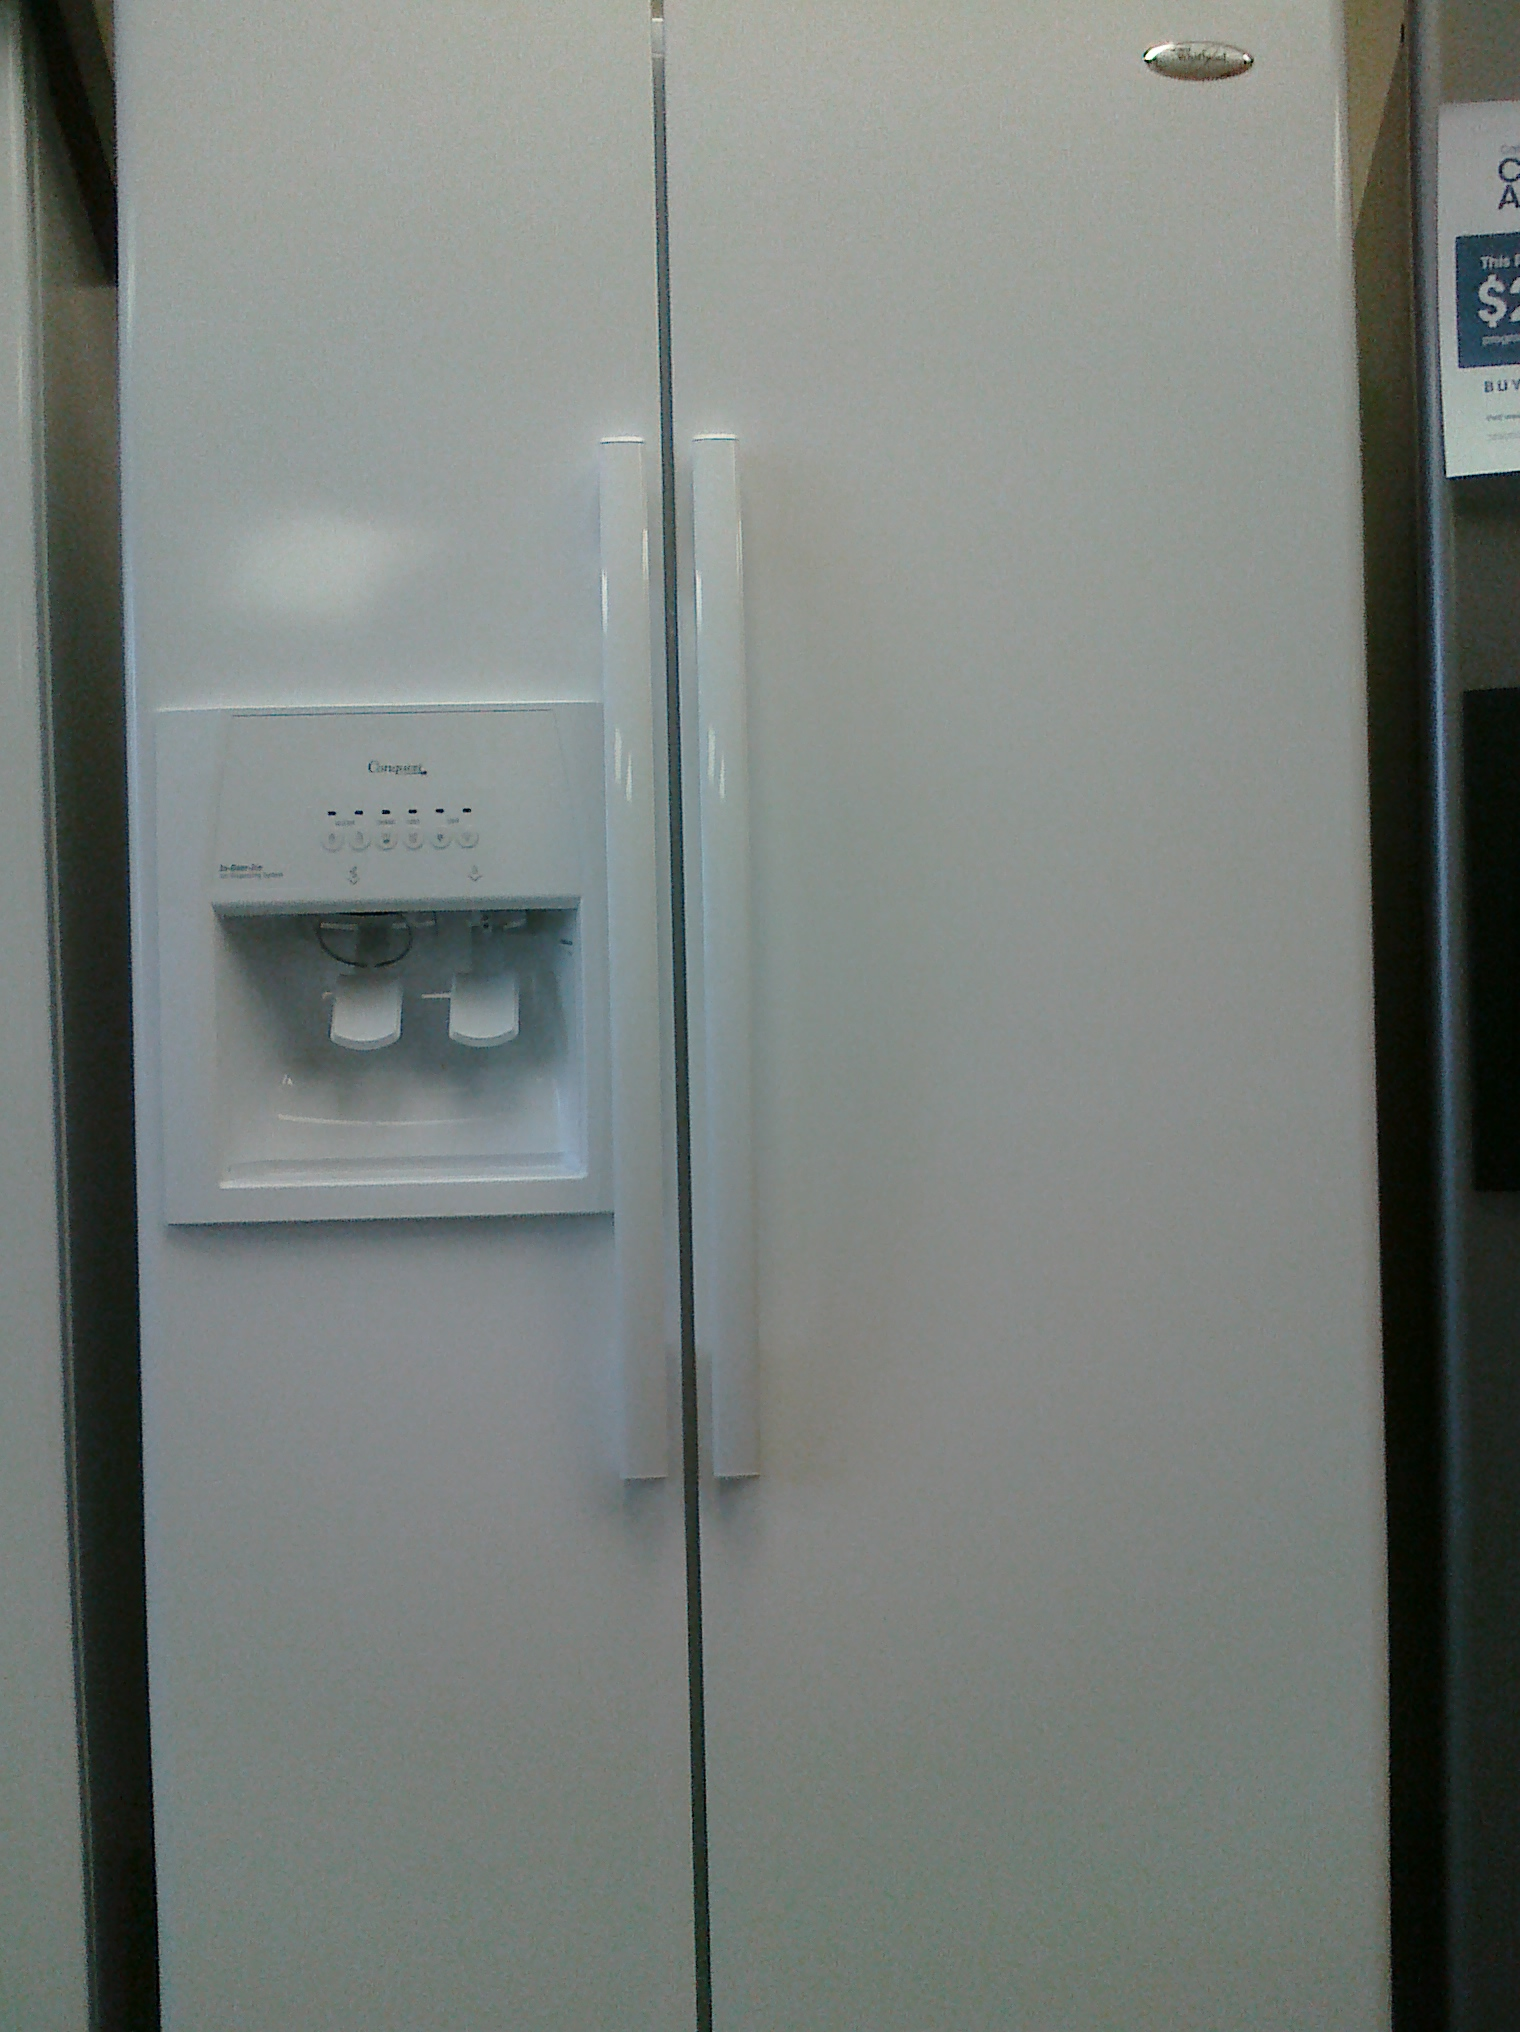 whirlpool side by side refrigerator white. whirlpool ed5lvaxwq side by refrigerator white